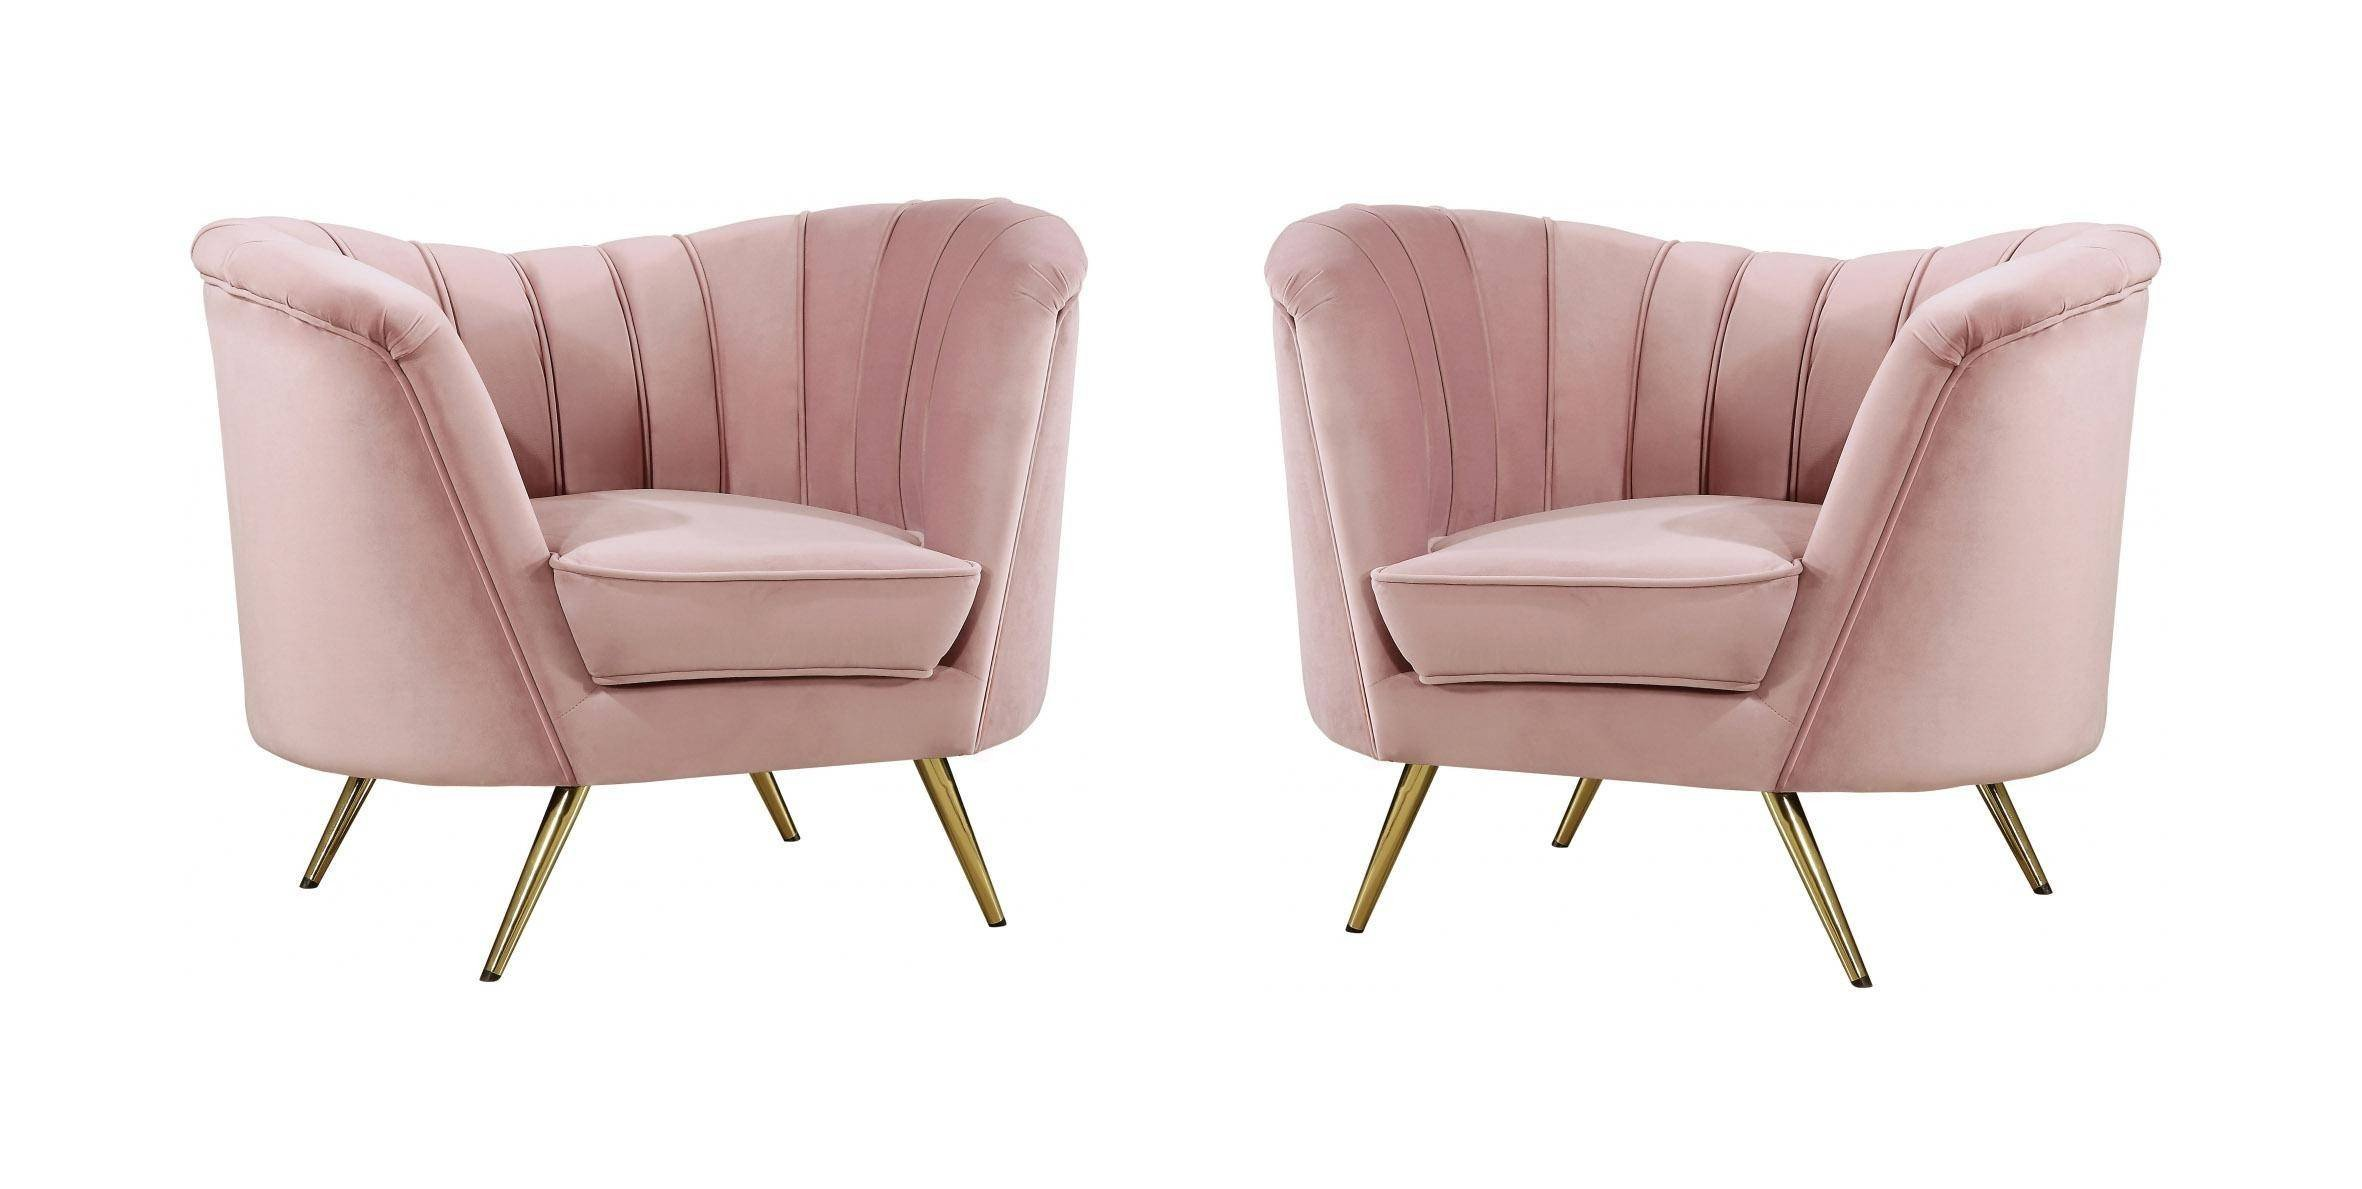 Pink Chair for Bedroom New Meridian Furniture Margo Pink Velvet Gold Stainless Legs Accent Chair Set Of 2